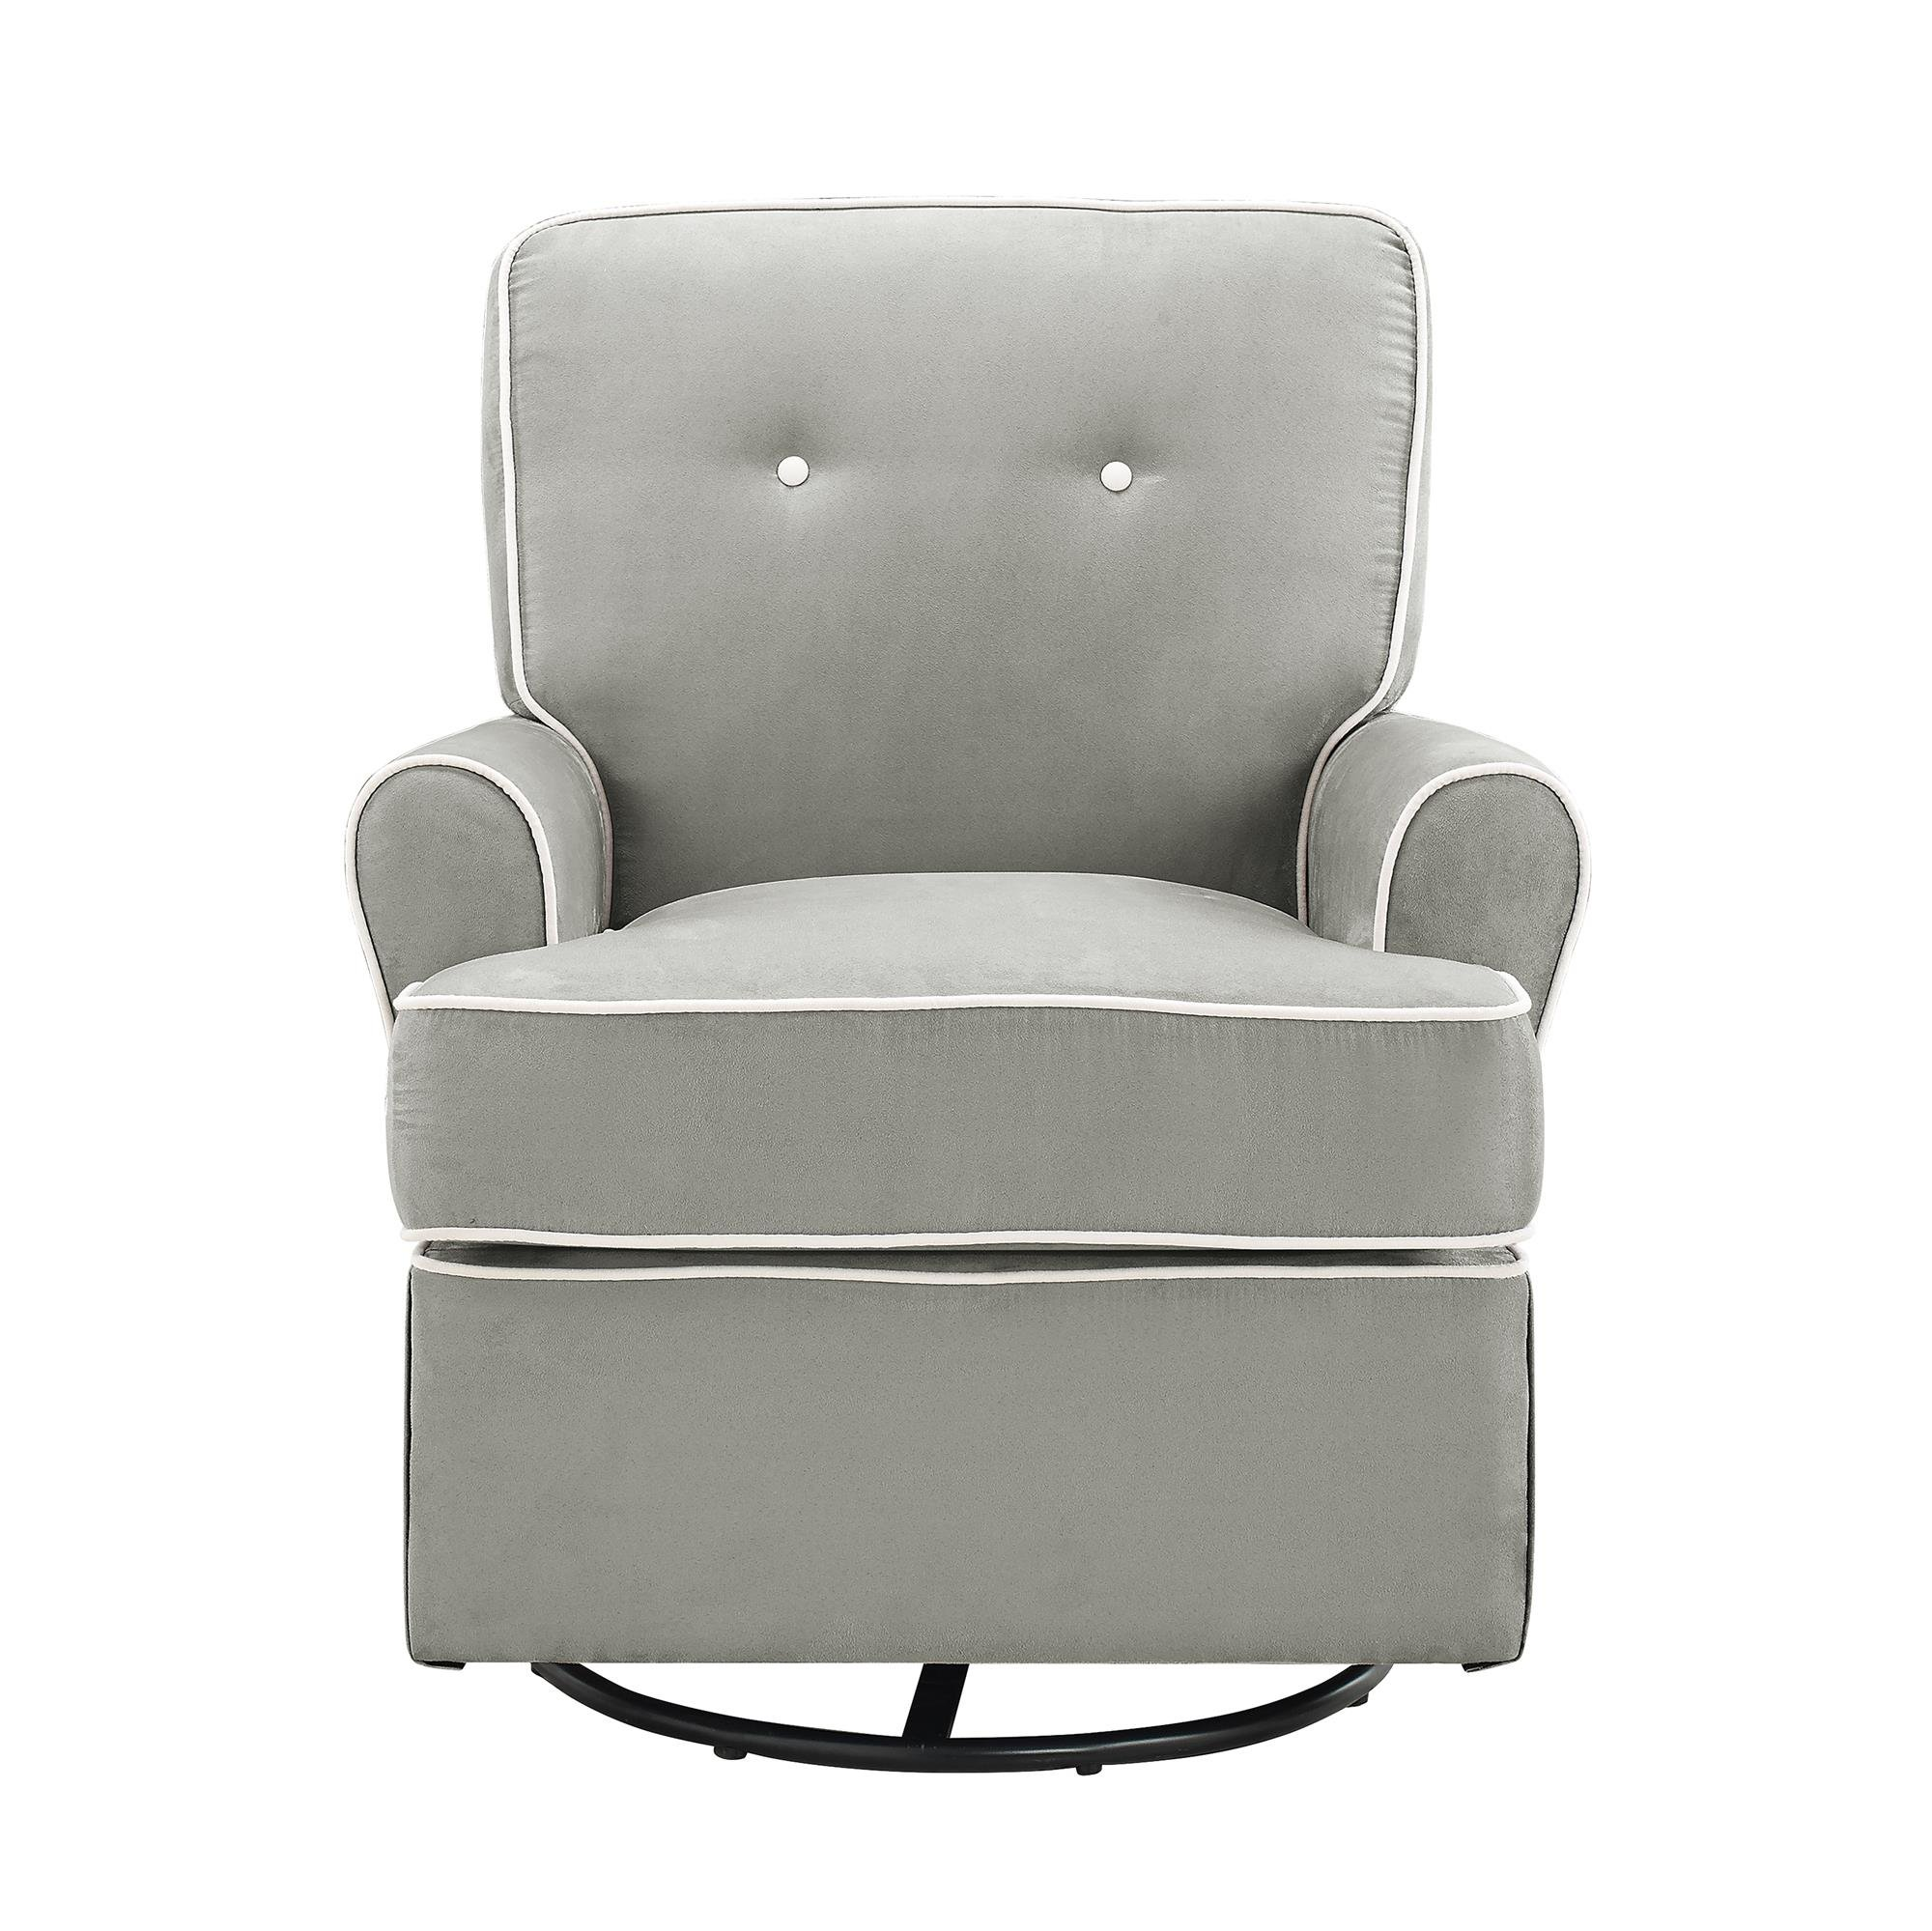 Baby Relax The Tinsley Nursery Swivel Glider Chair, Grey by Baby Relax